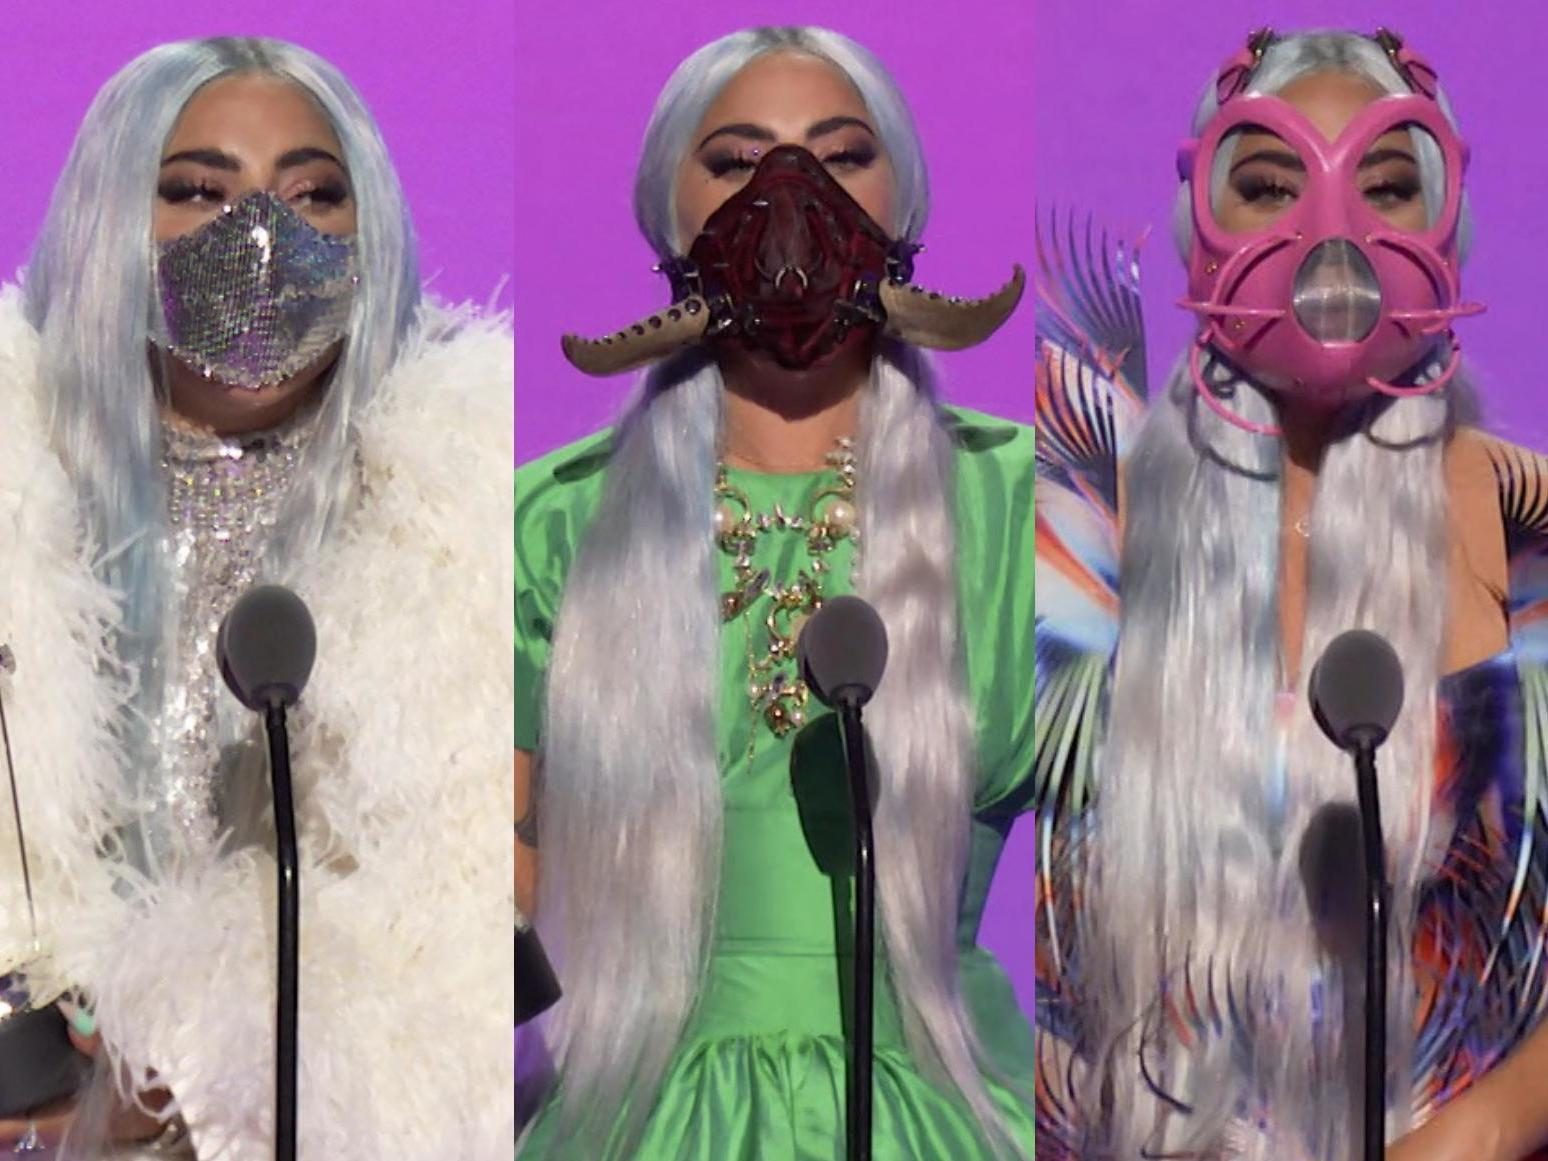 Mtv Vmas 2020 Lady Gaga S Best Outfits From An Astronaut Helmet To Futuristic Face Masks The Independent The Independent